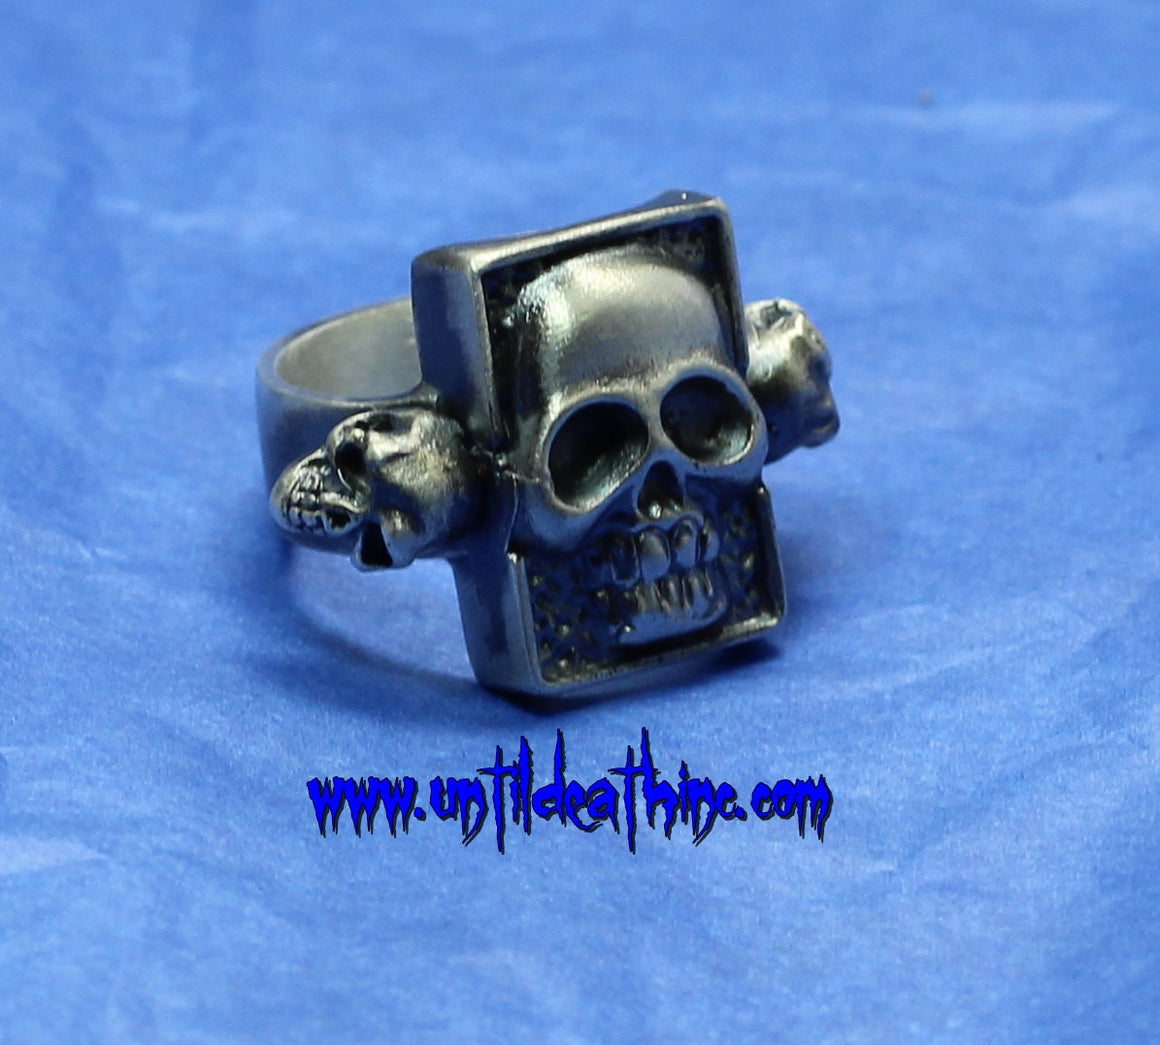 Pez Monster Skull Ring With skull accents 925 Sterling Silver Ring